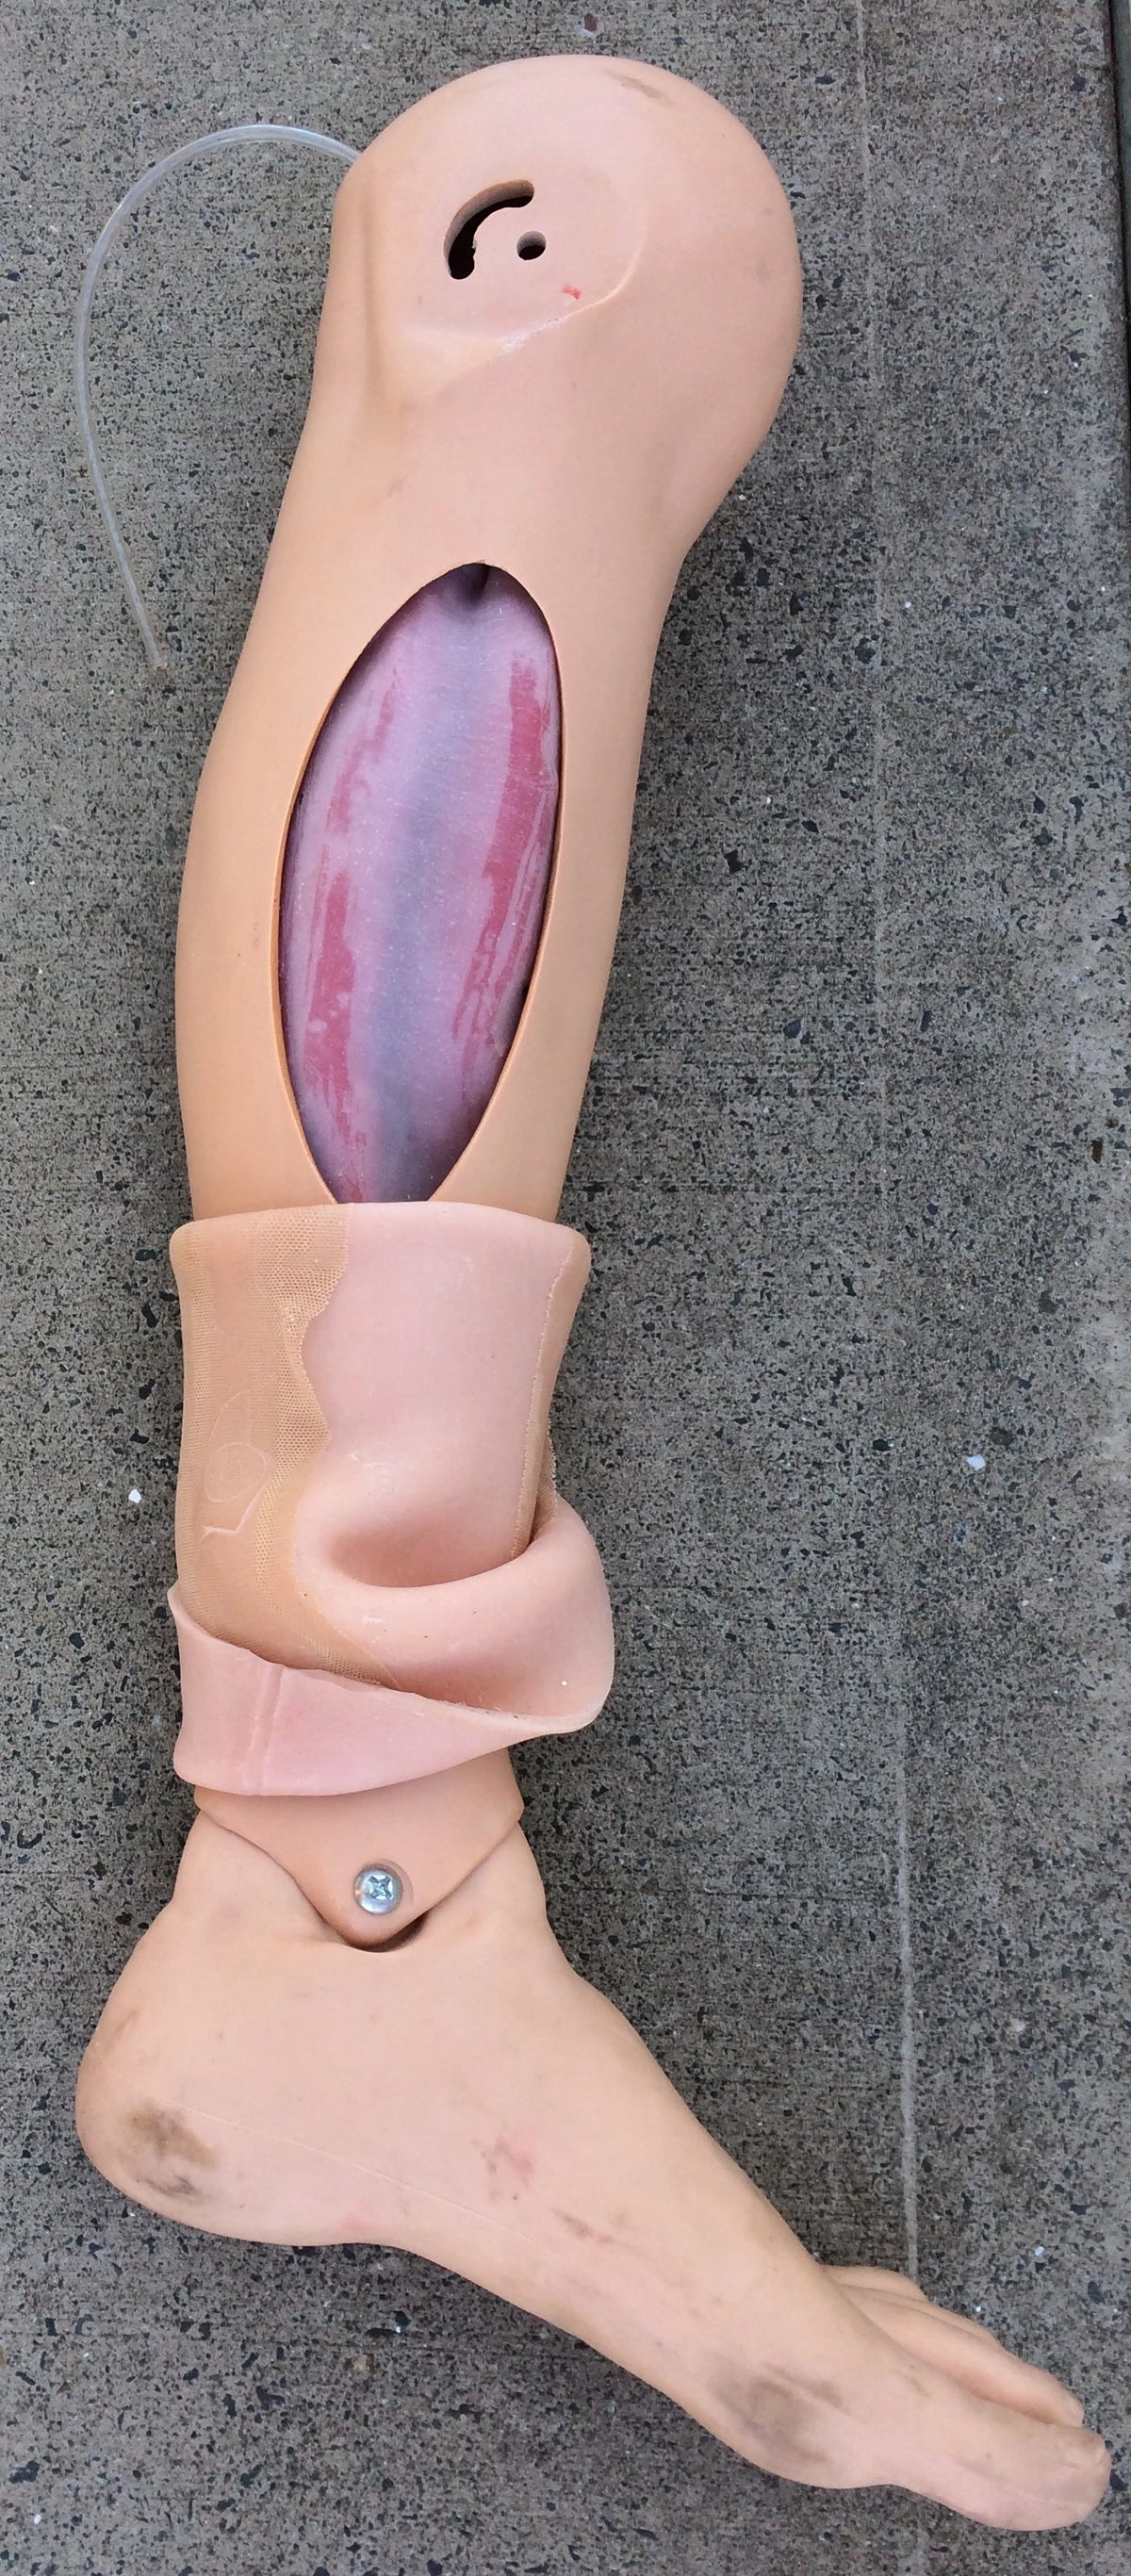 MT405 COMPARTMENT SYNDROME MANIKIN LEG